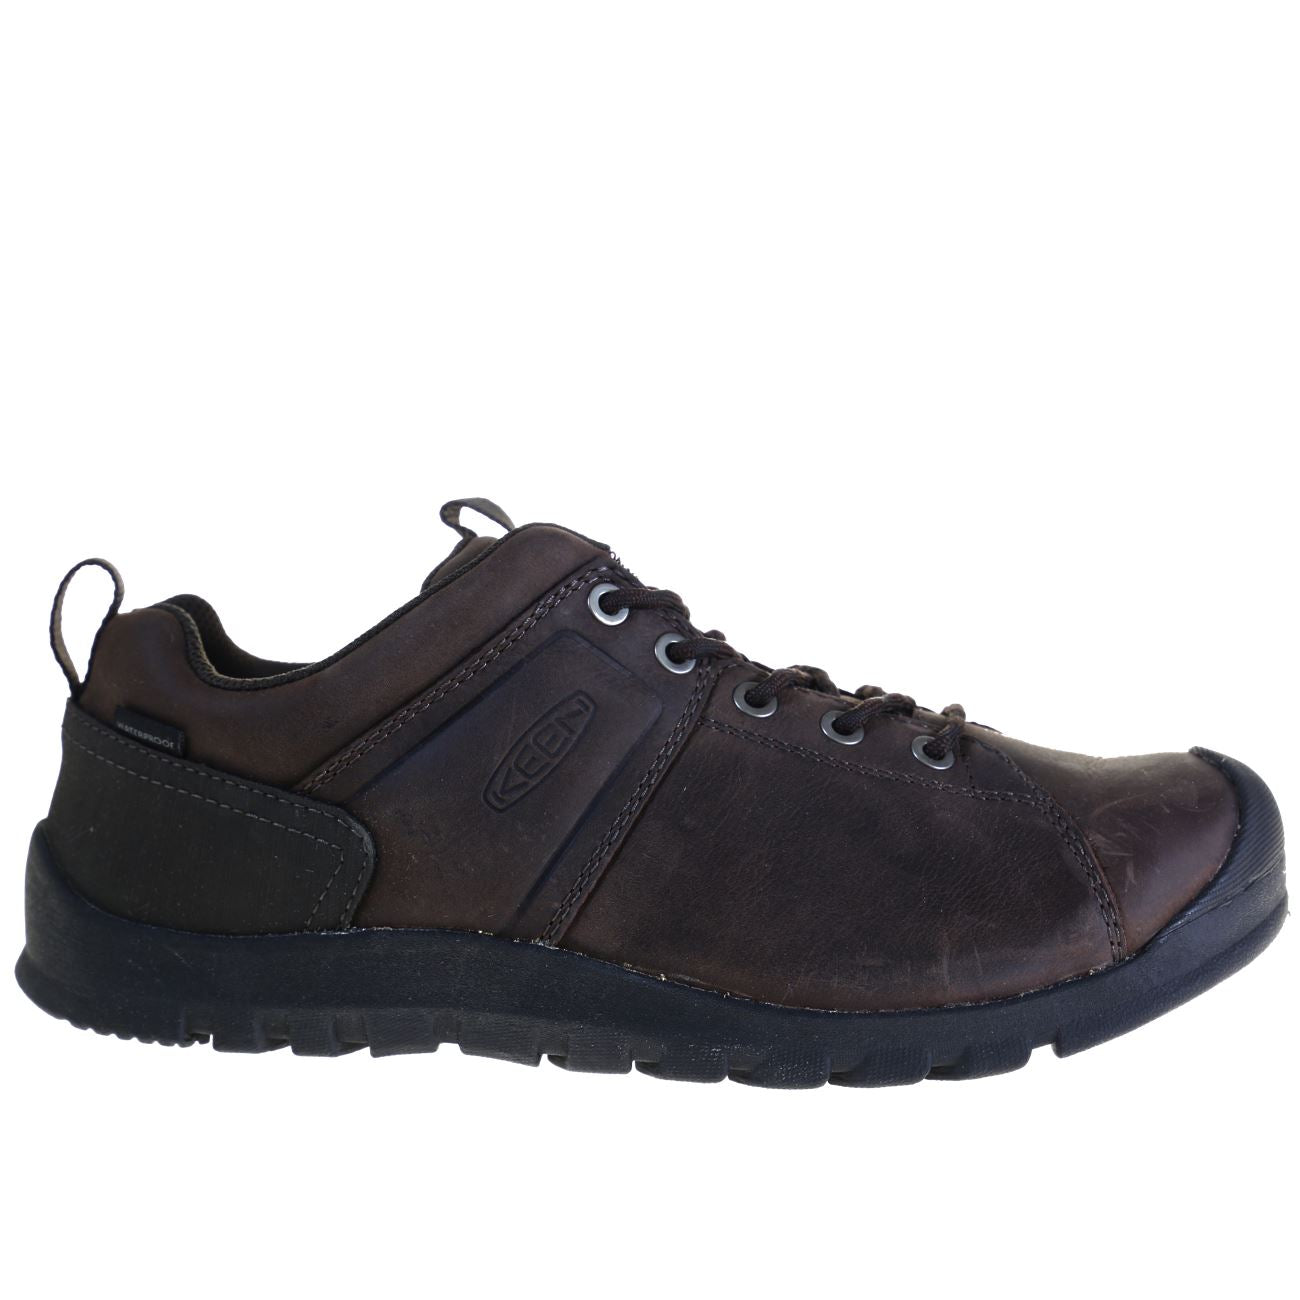 KEEN, Citizen KEEN Low, WP, Mens, Gibraltar Fudgesi Shoes Keen